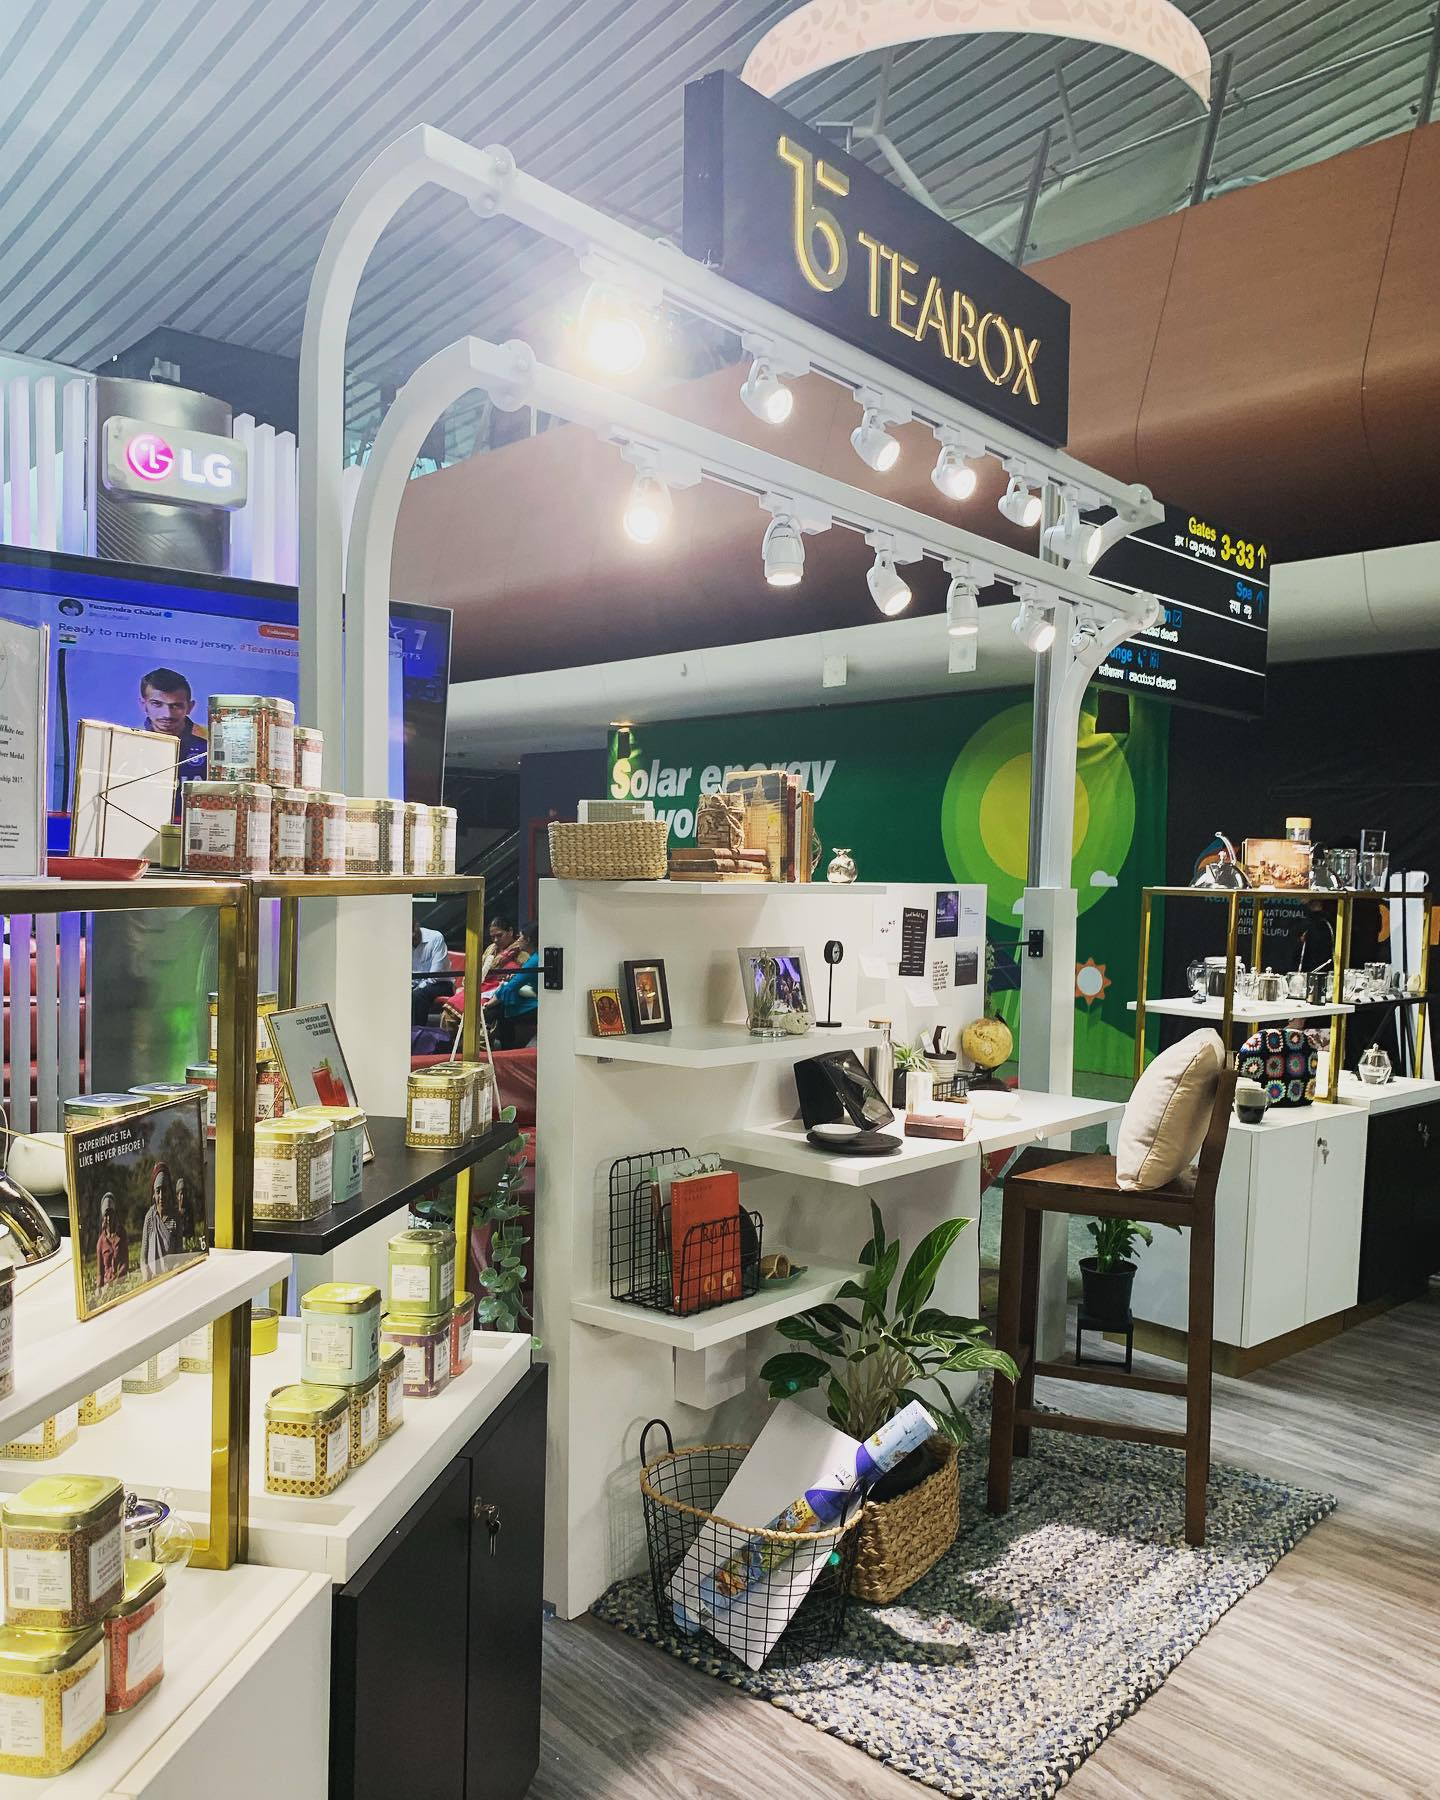 India's first ever tea experiential store